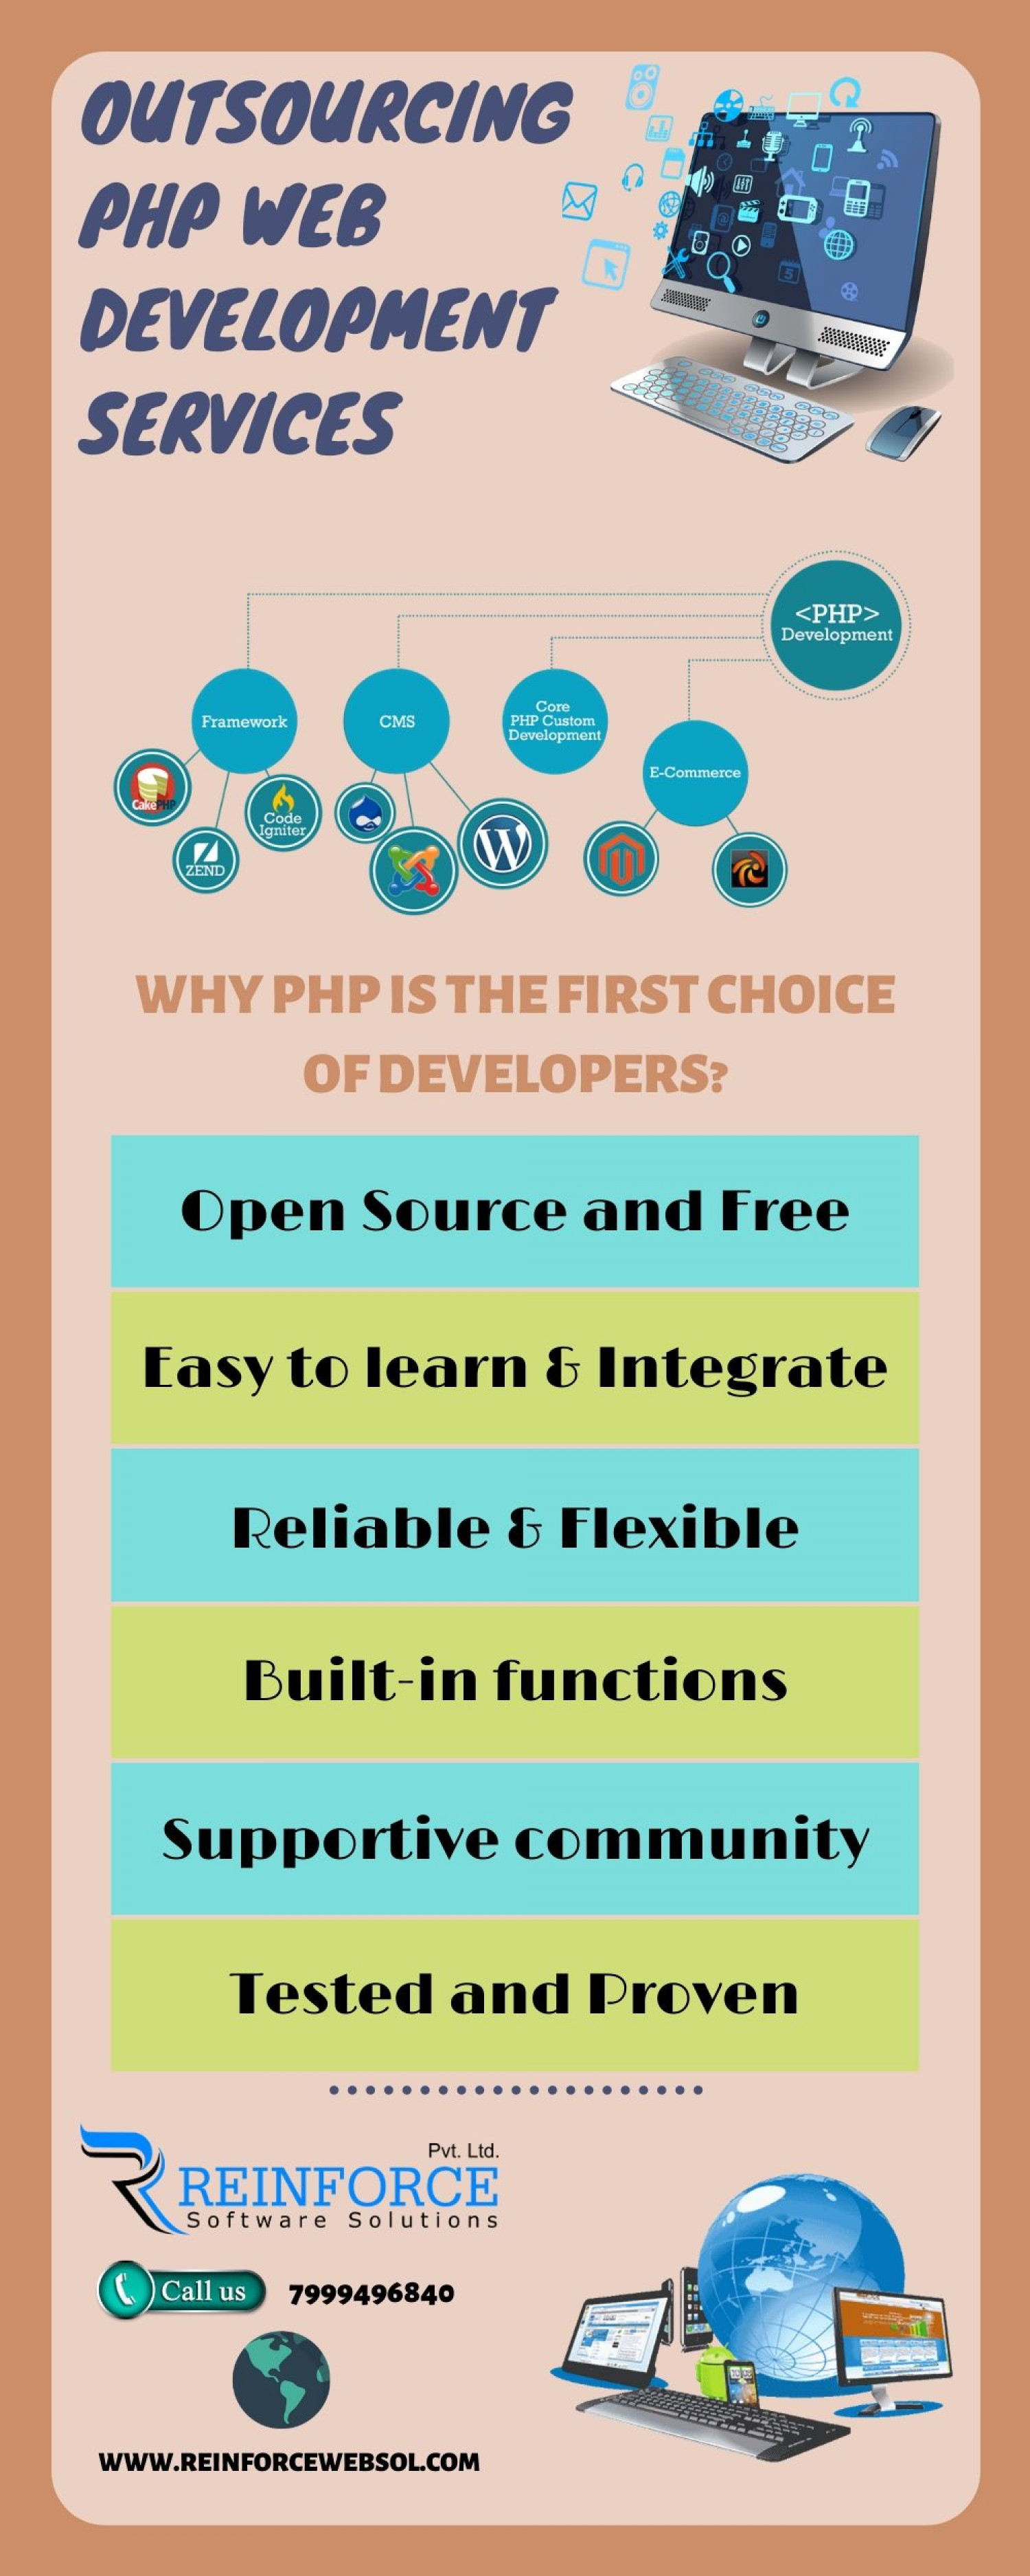 Outsourcing PHP Web Development Services Infographic